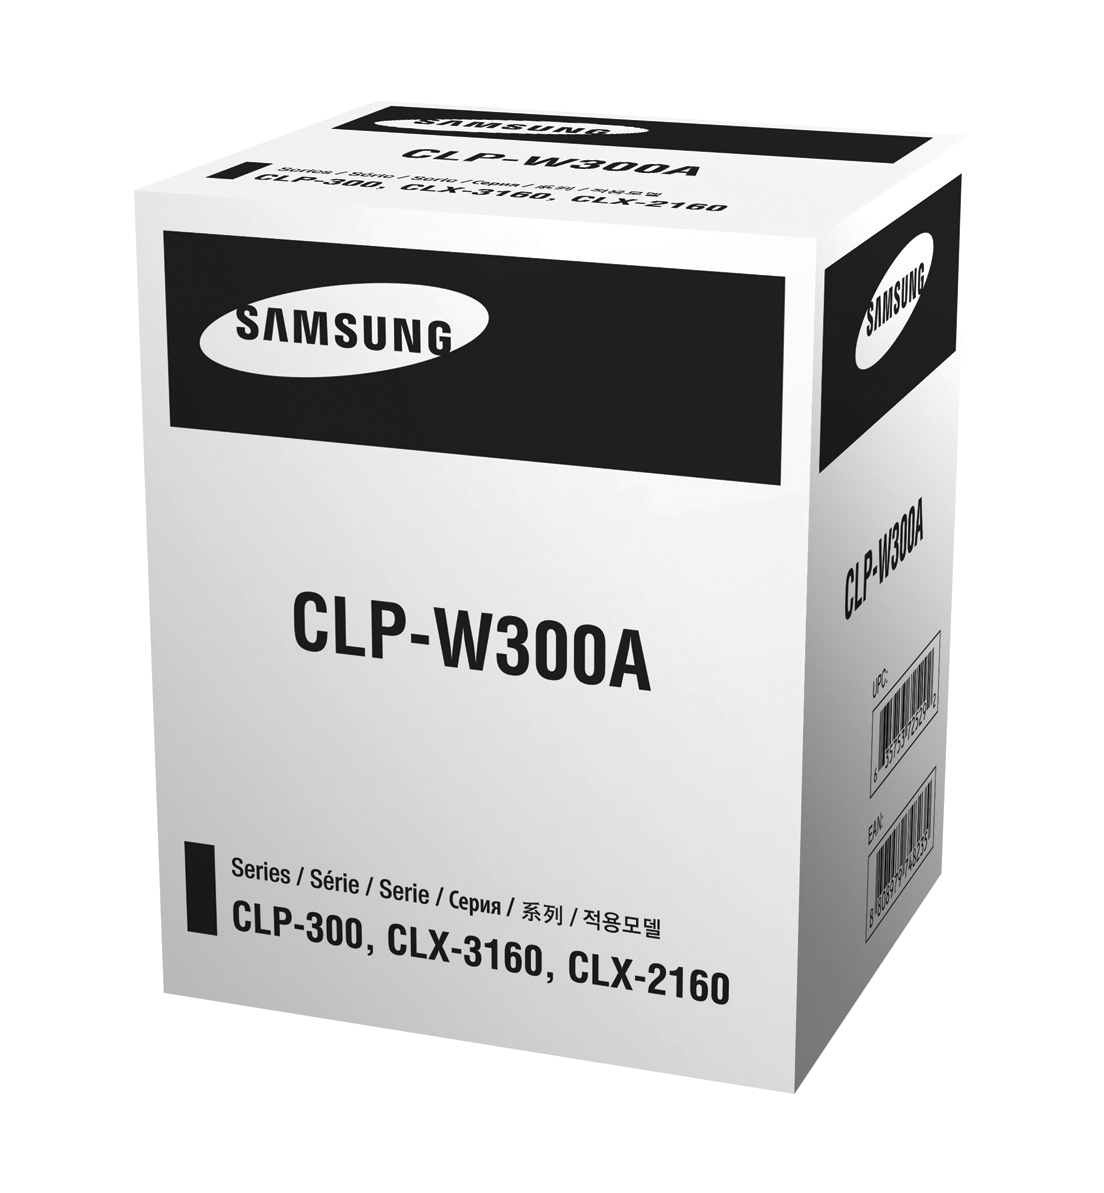 Samsung CLPW300A/SEE Waste Toner